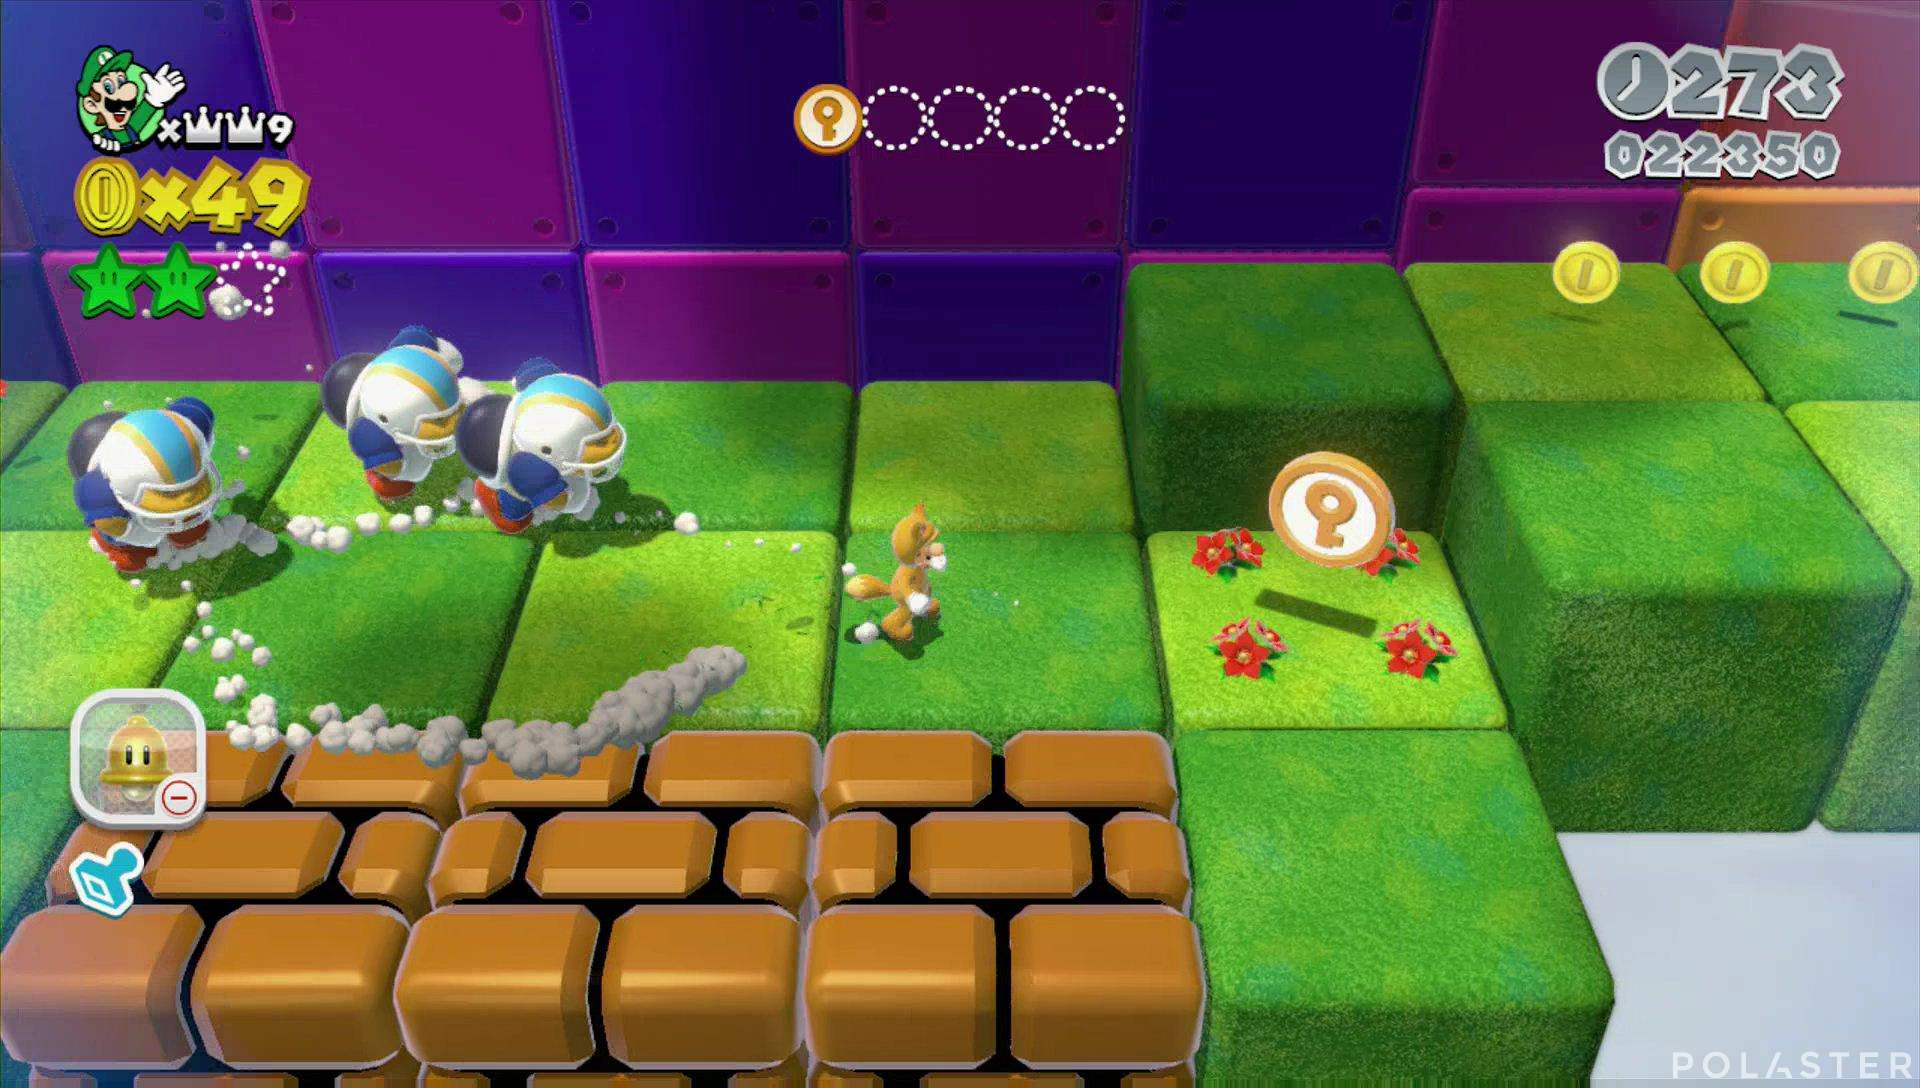 Super Mario 3D World Mundo Estrella-5 Moneda llave 2